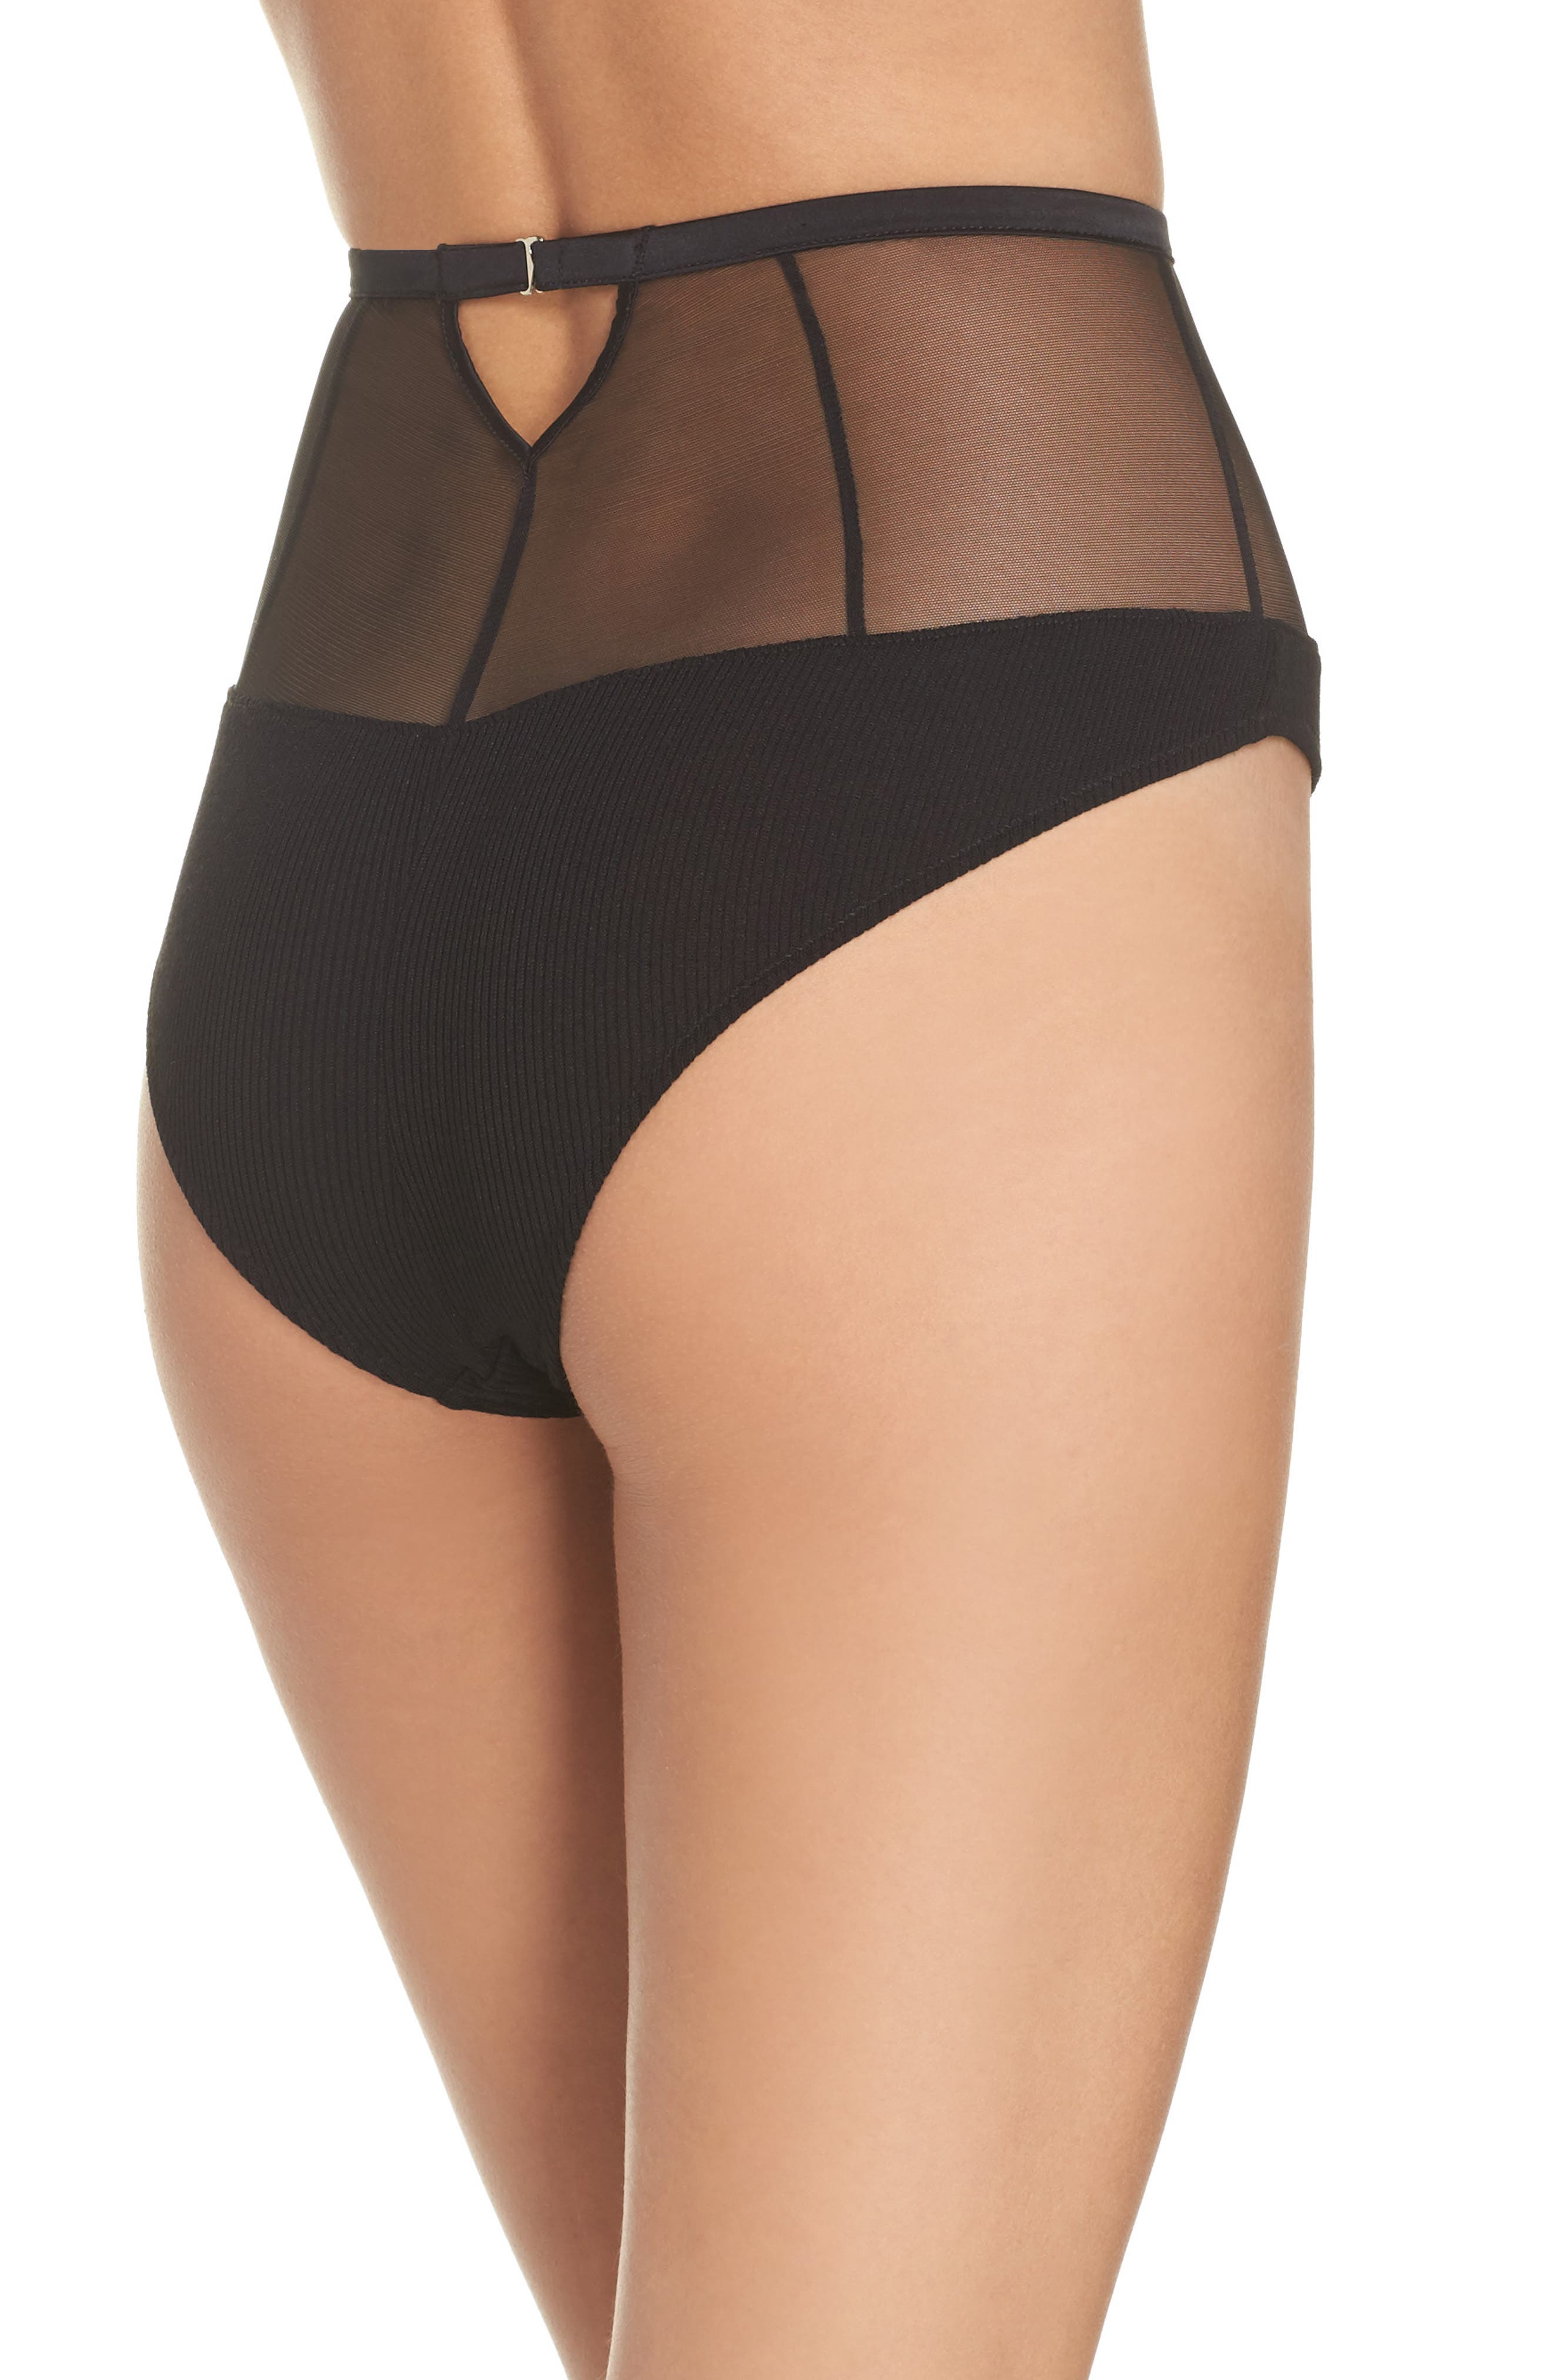 High Waist Mesh Panties,                             Alternate thumbnail 2, color,                             002